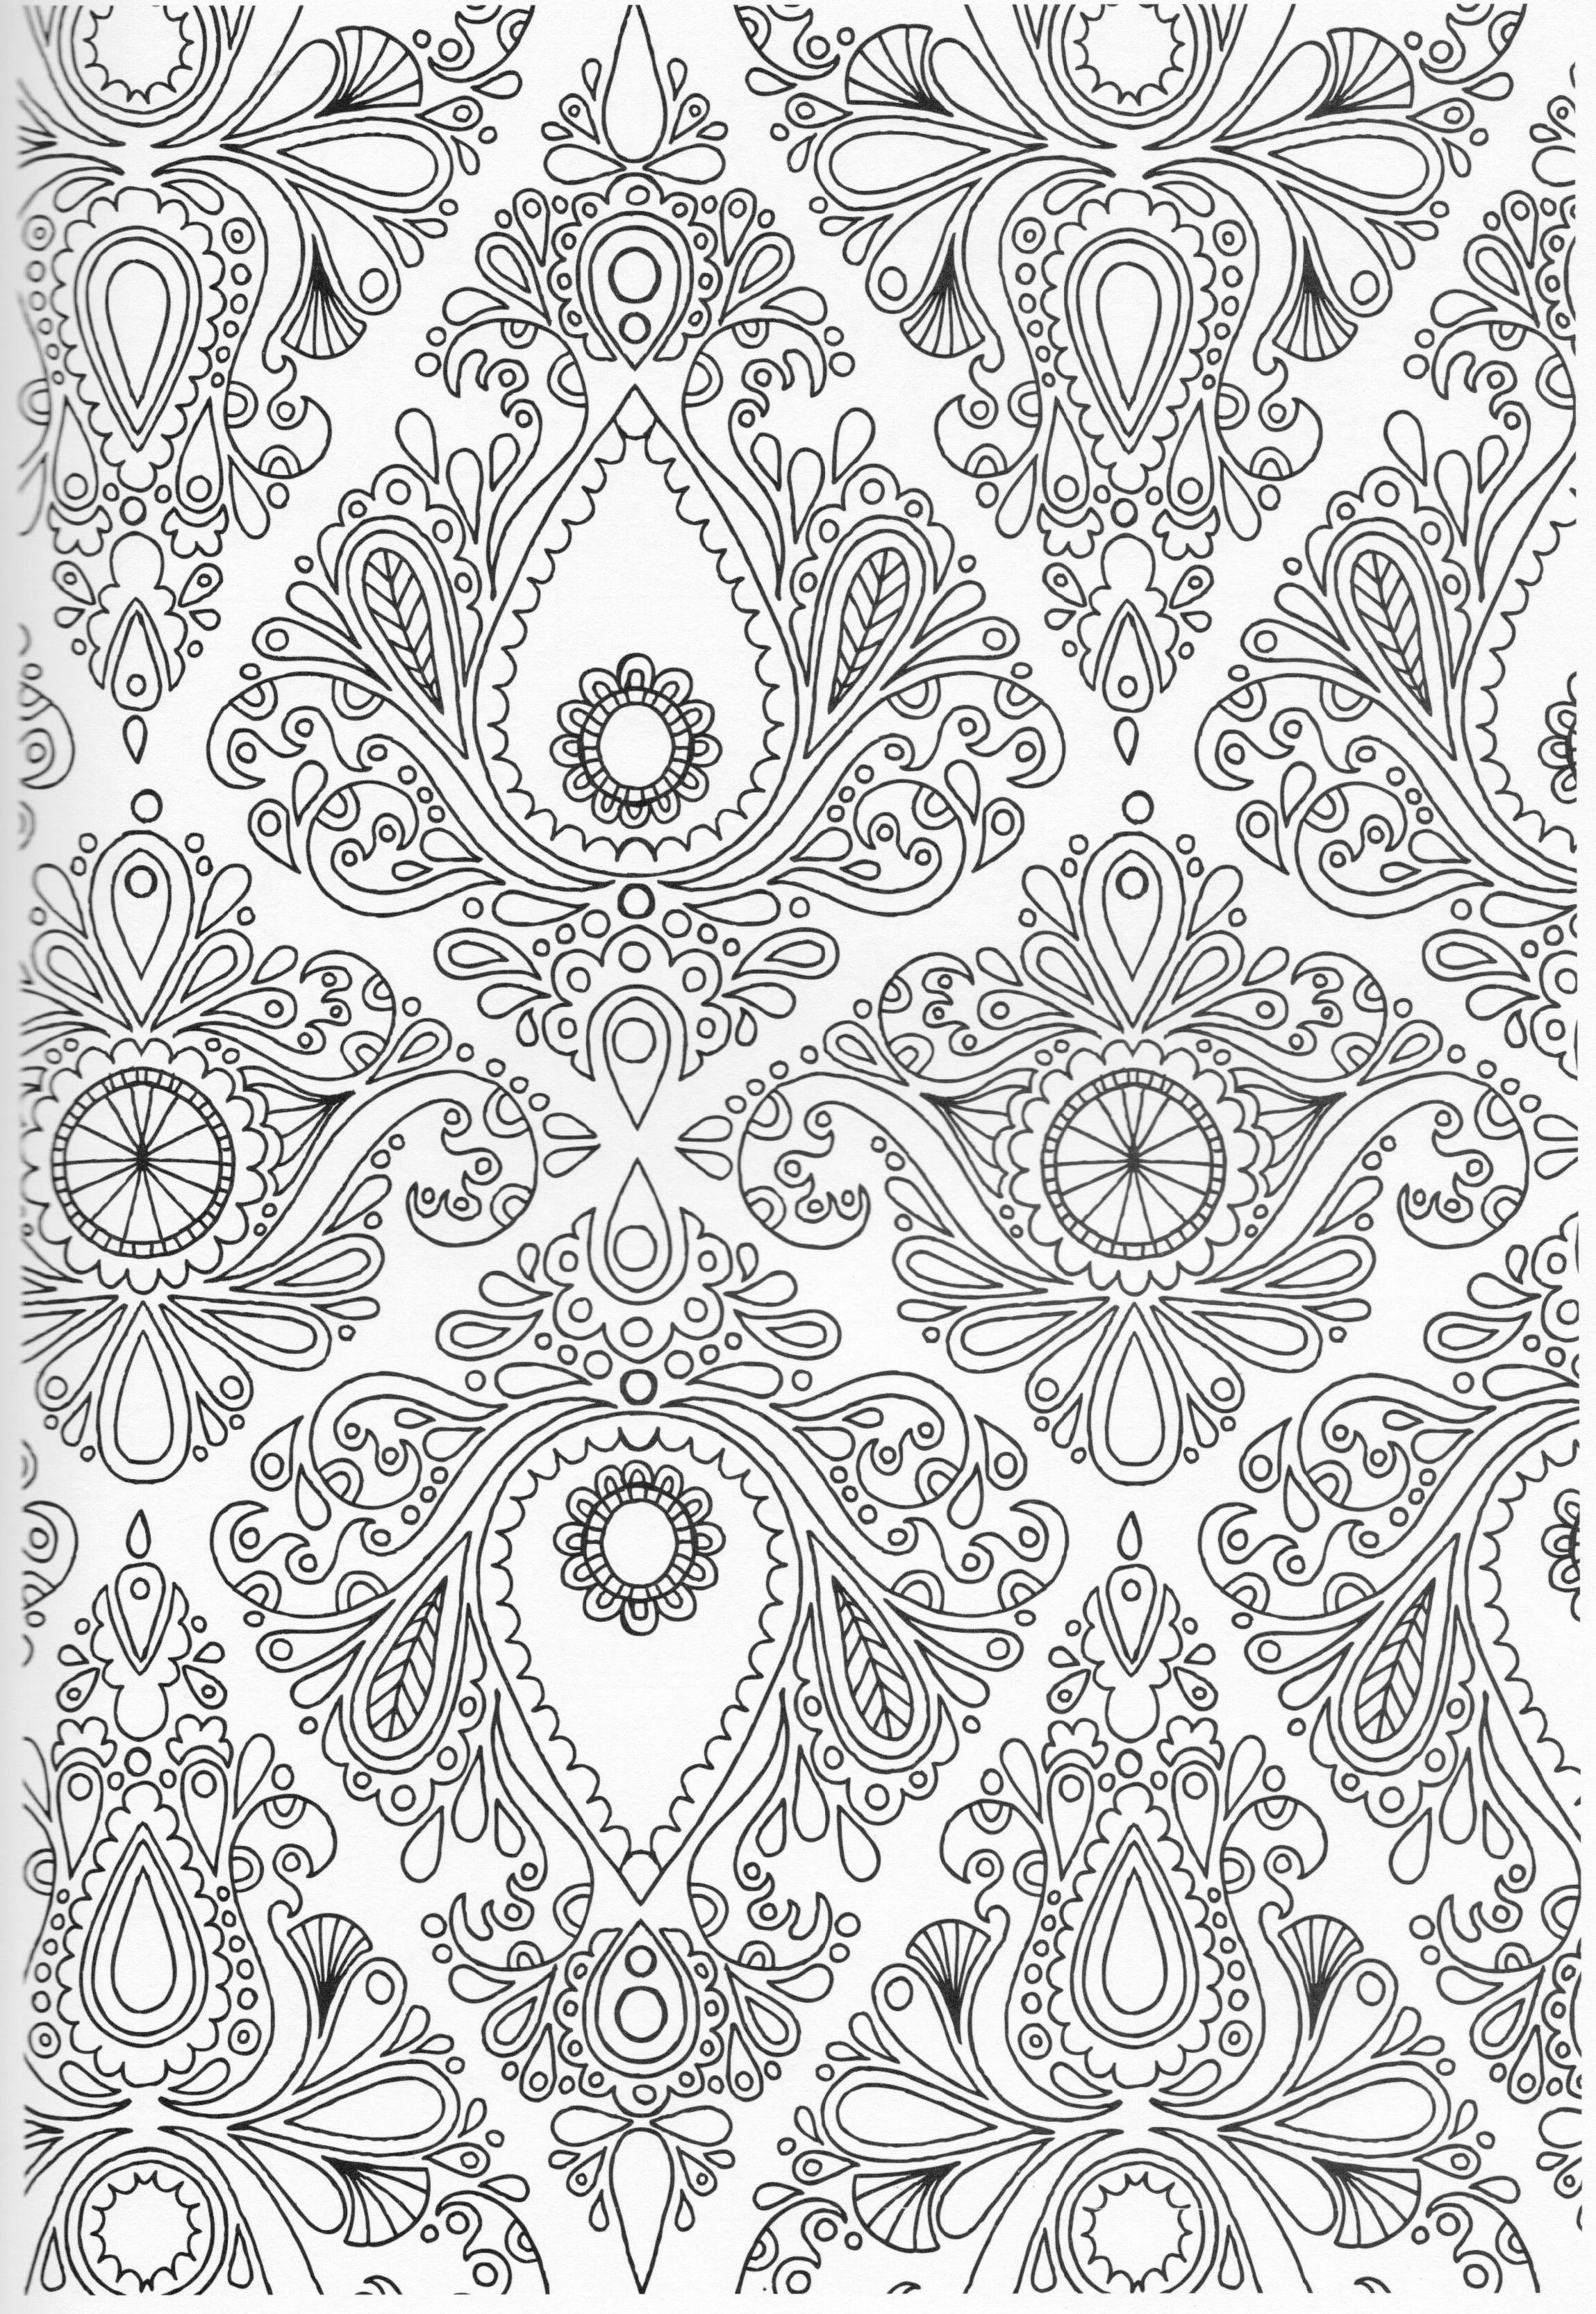 Adult coloring page | Join my grown-up coloring group on fb: "|2298|3332|?|d0d327a39afa06fbc6a736ff7fb30715|False|UNLIKELY|0.3348807692527771